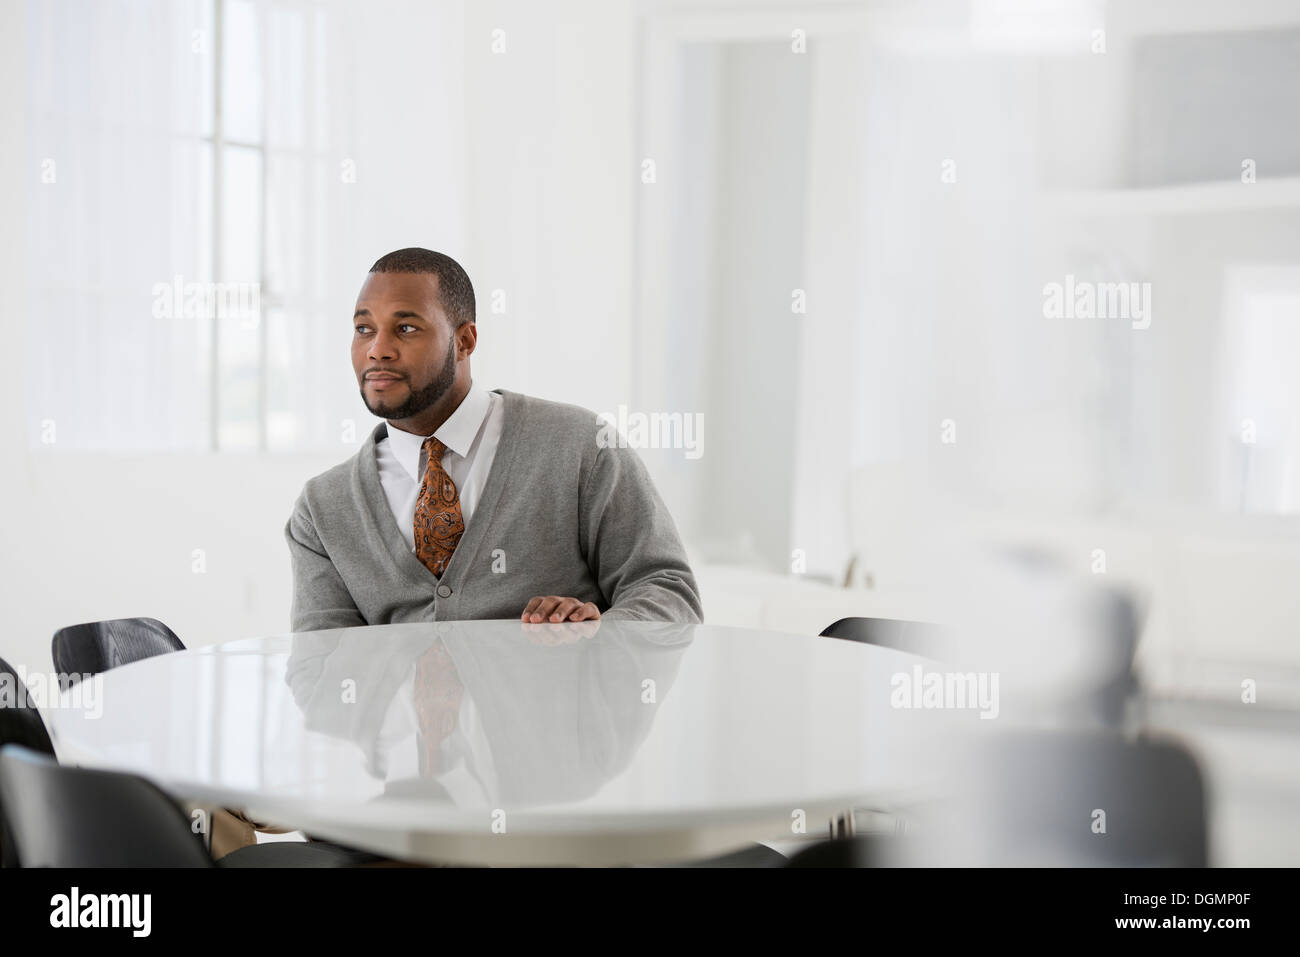 Office interior. A man in a business suit at a table seated at a table. - Stock Image